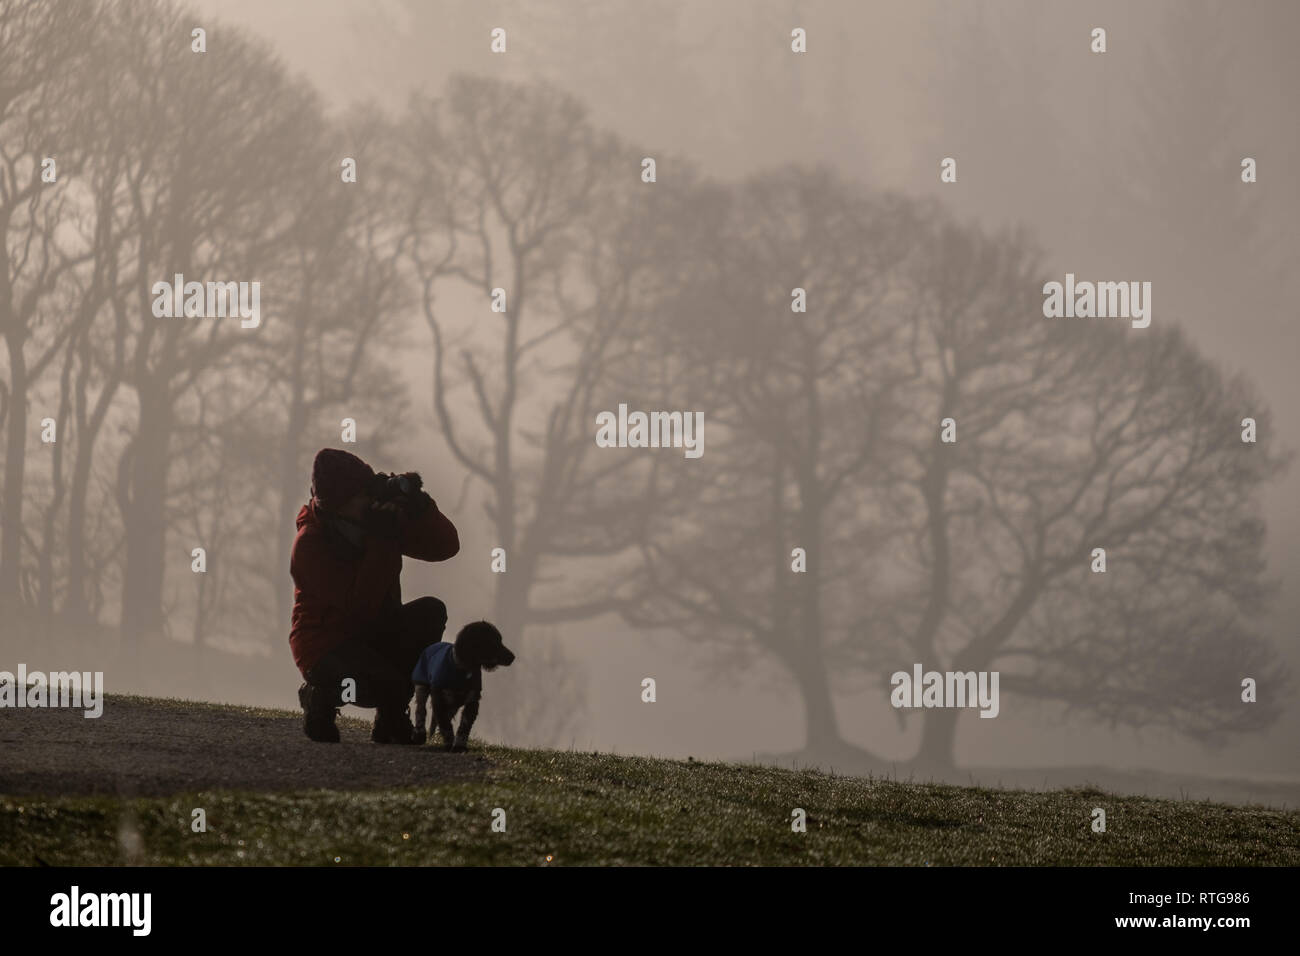 A photographer with a dog captures a shot on a misty morning near Elterwater, Lake District, UK Stock Photo